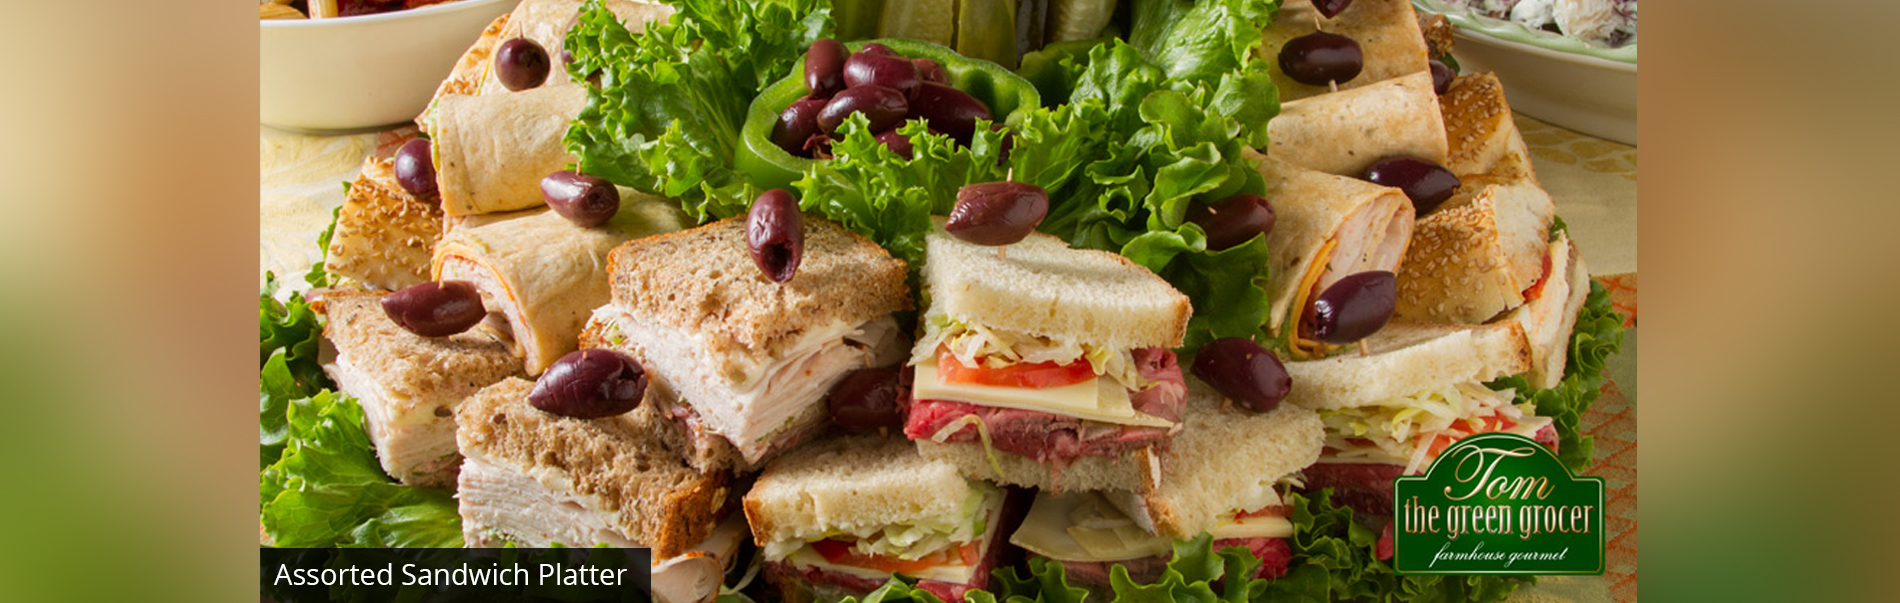 Tom The Green Grocer | Scotch Plains, NJ | Catering